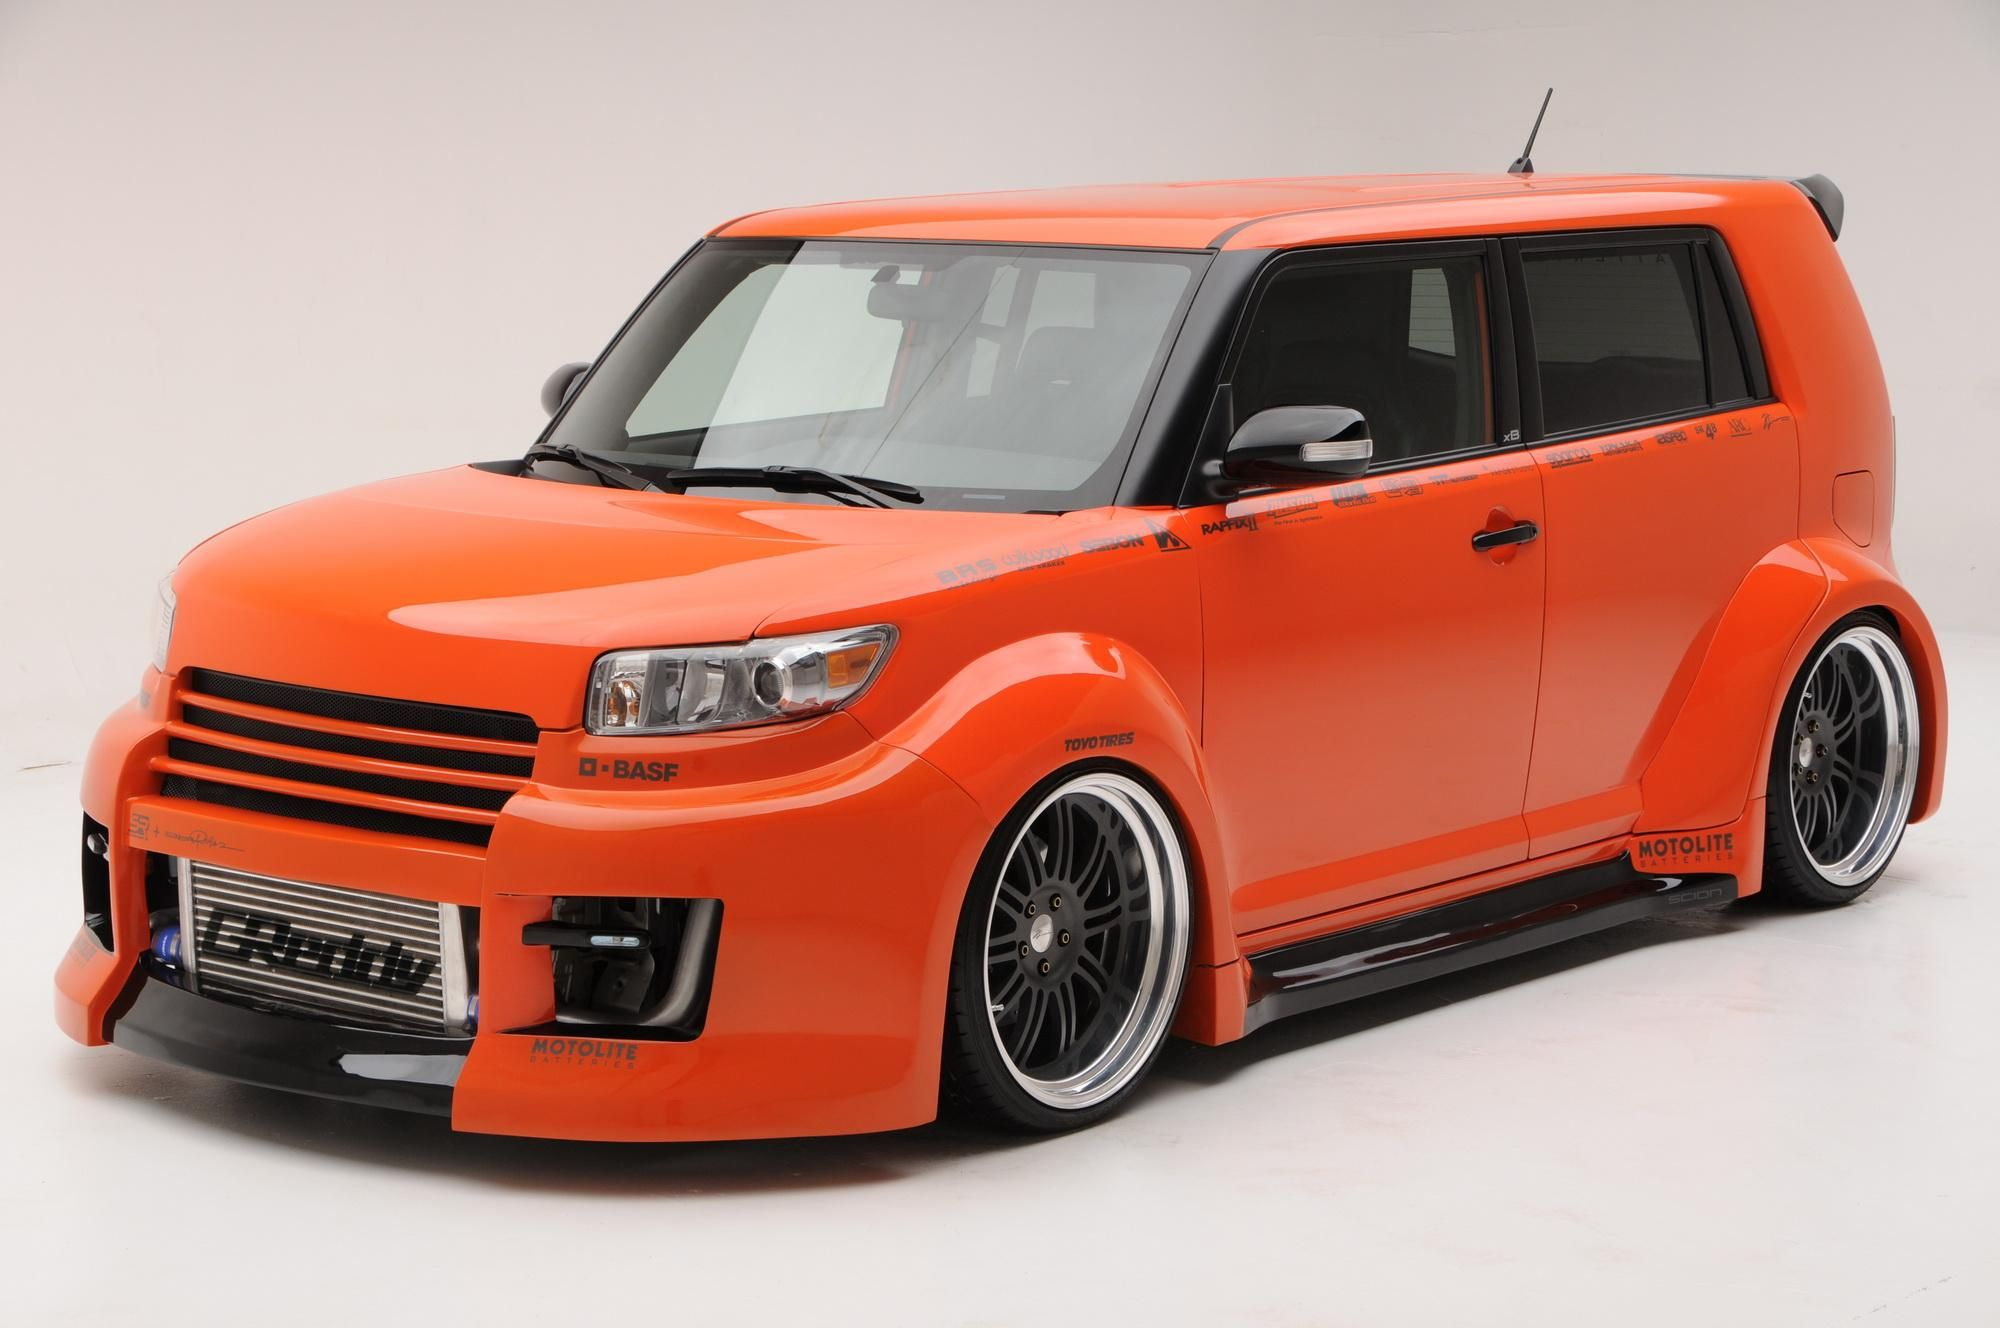 The Second Scion Presented At Sema Show Is The Xb Tuner Challenge By Eneri Abillar It Features A Brs Widebody Kit With Scion Xb 2009 Scion Xb Toyota Scion Xb